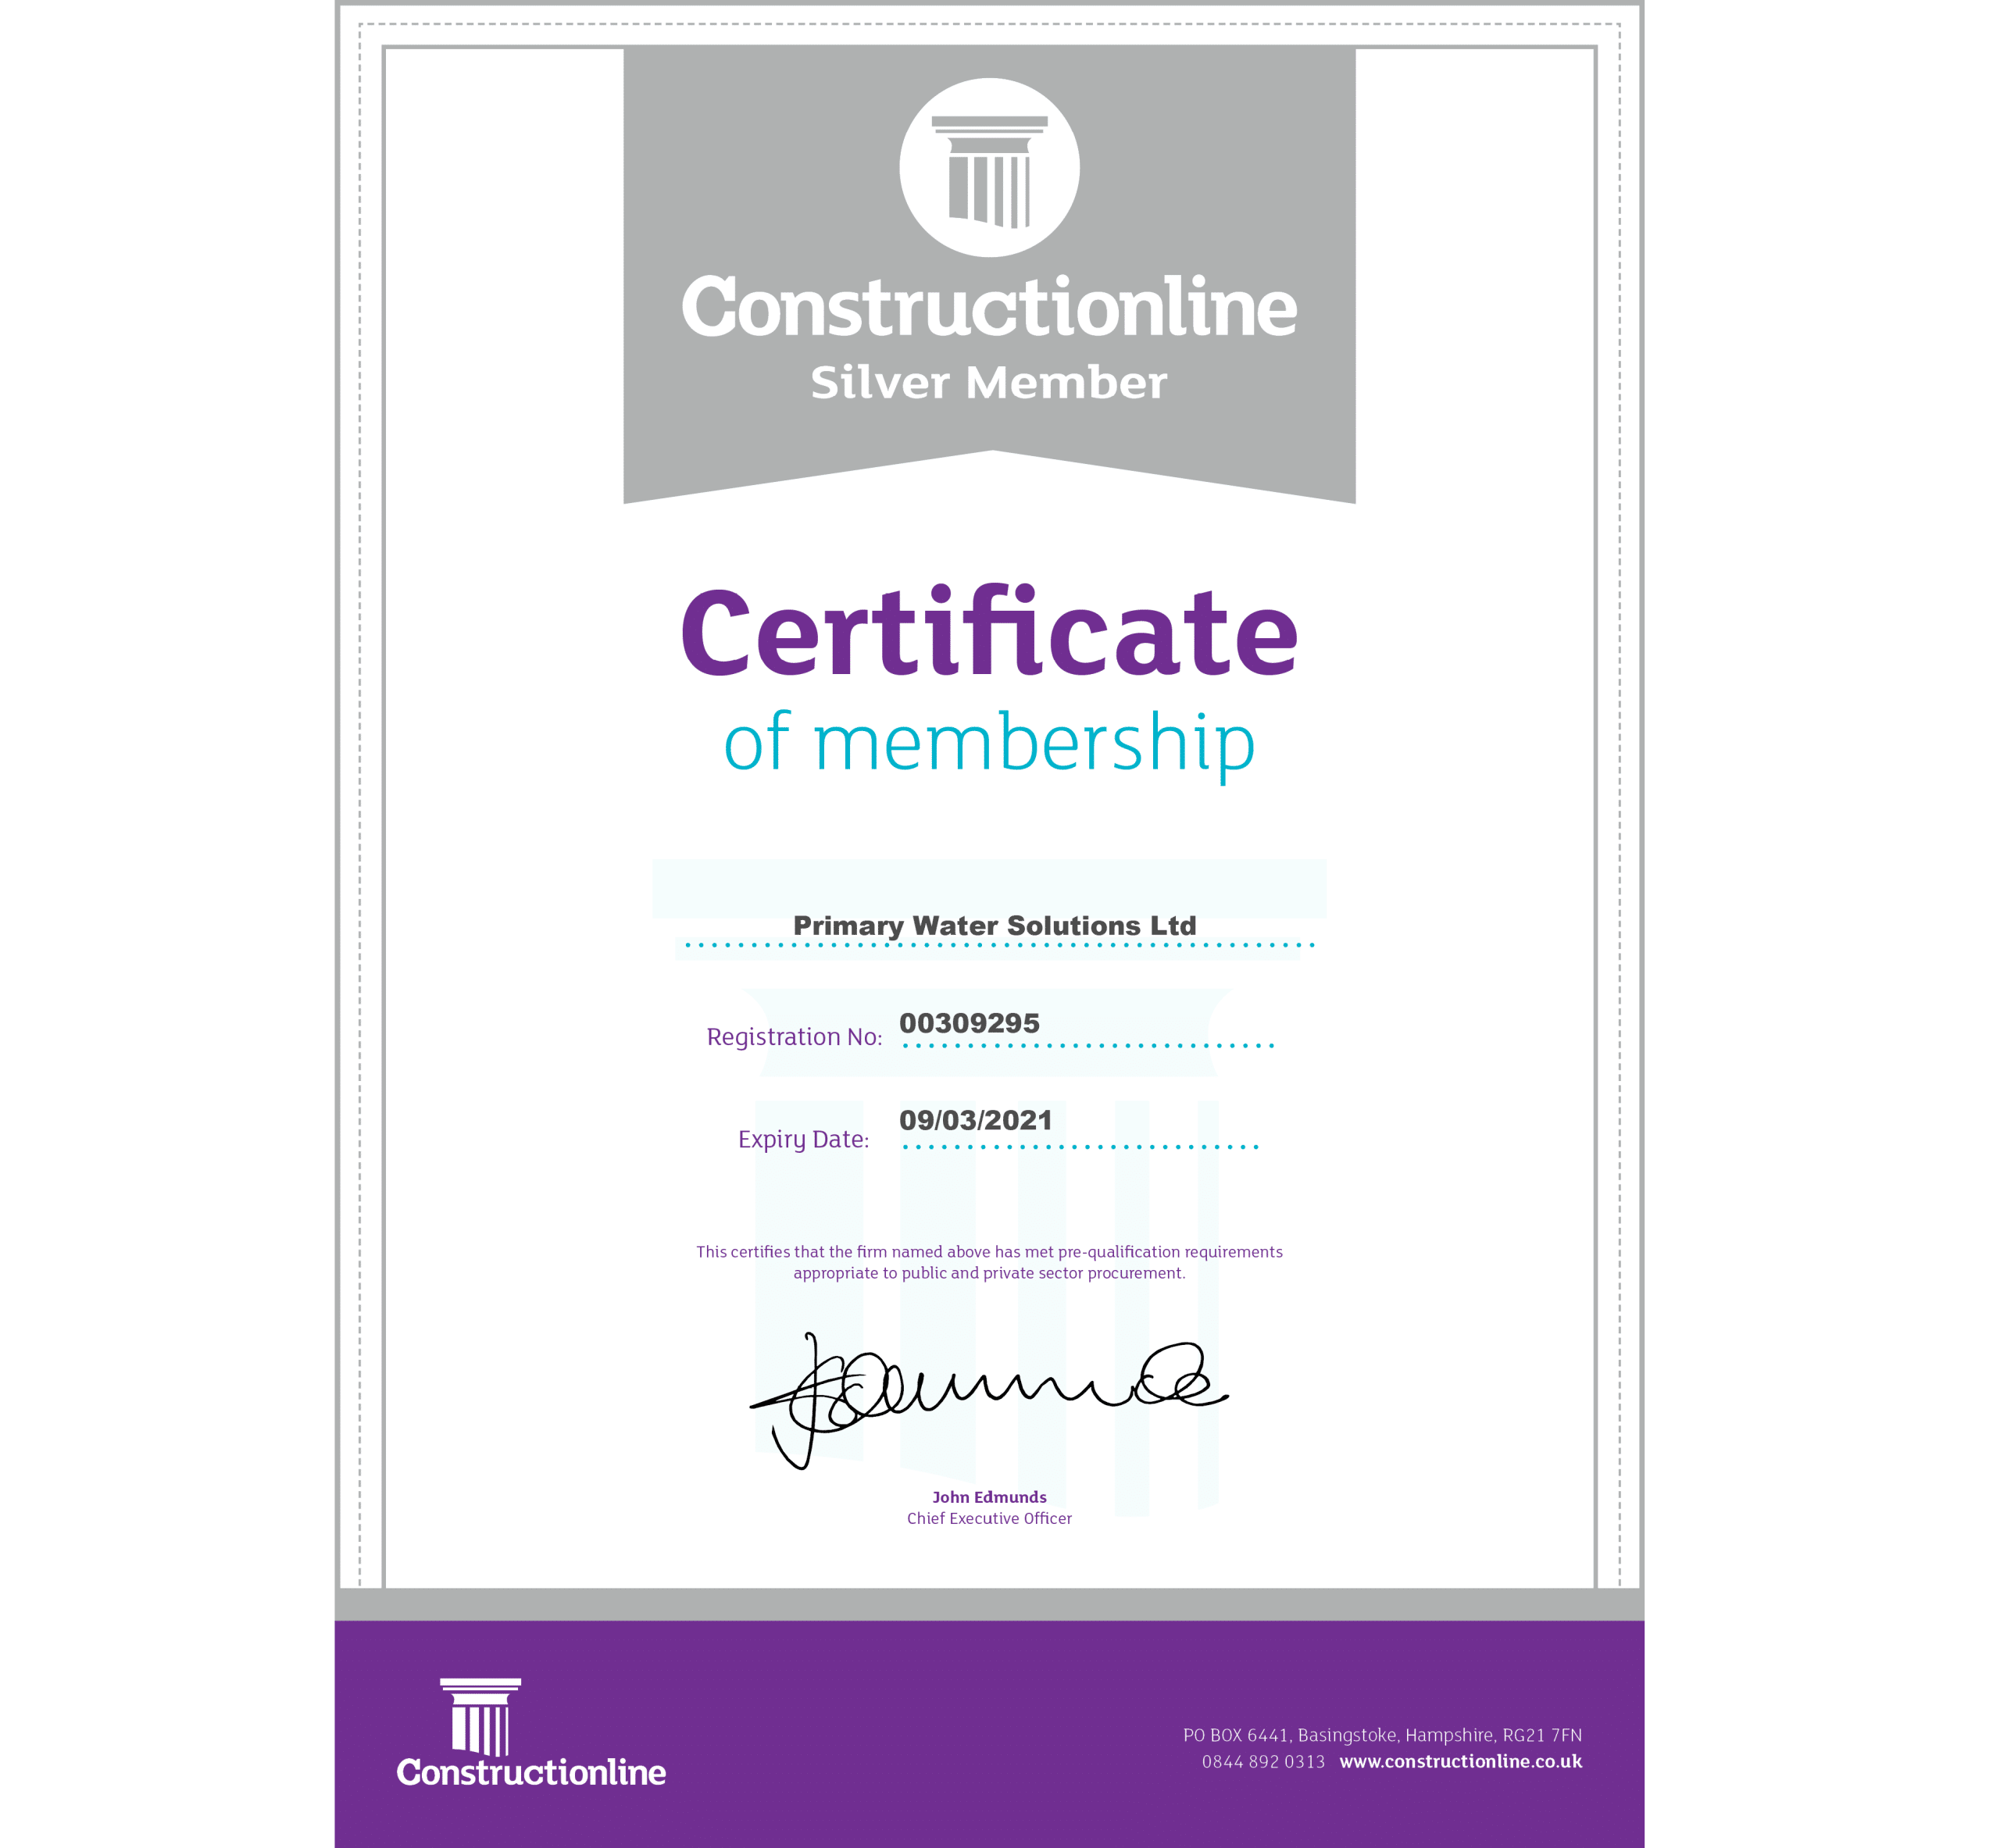 We have renewed our Constructionline accreditation